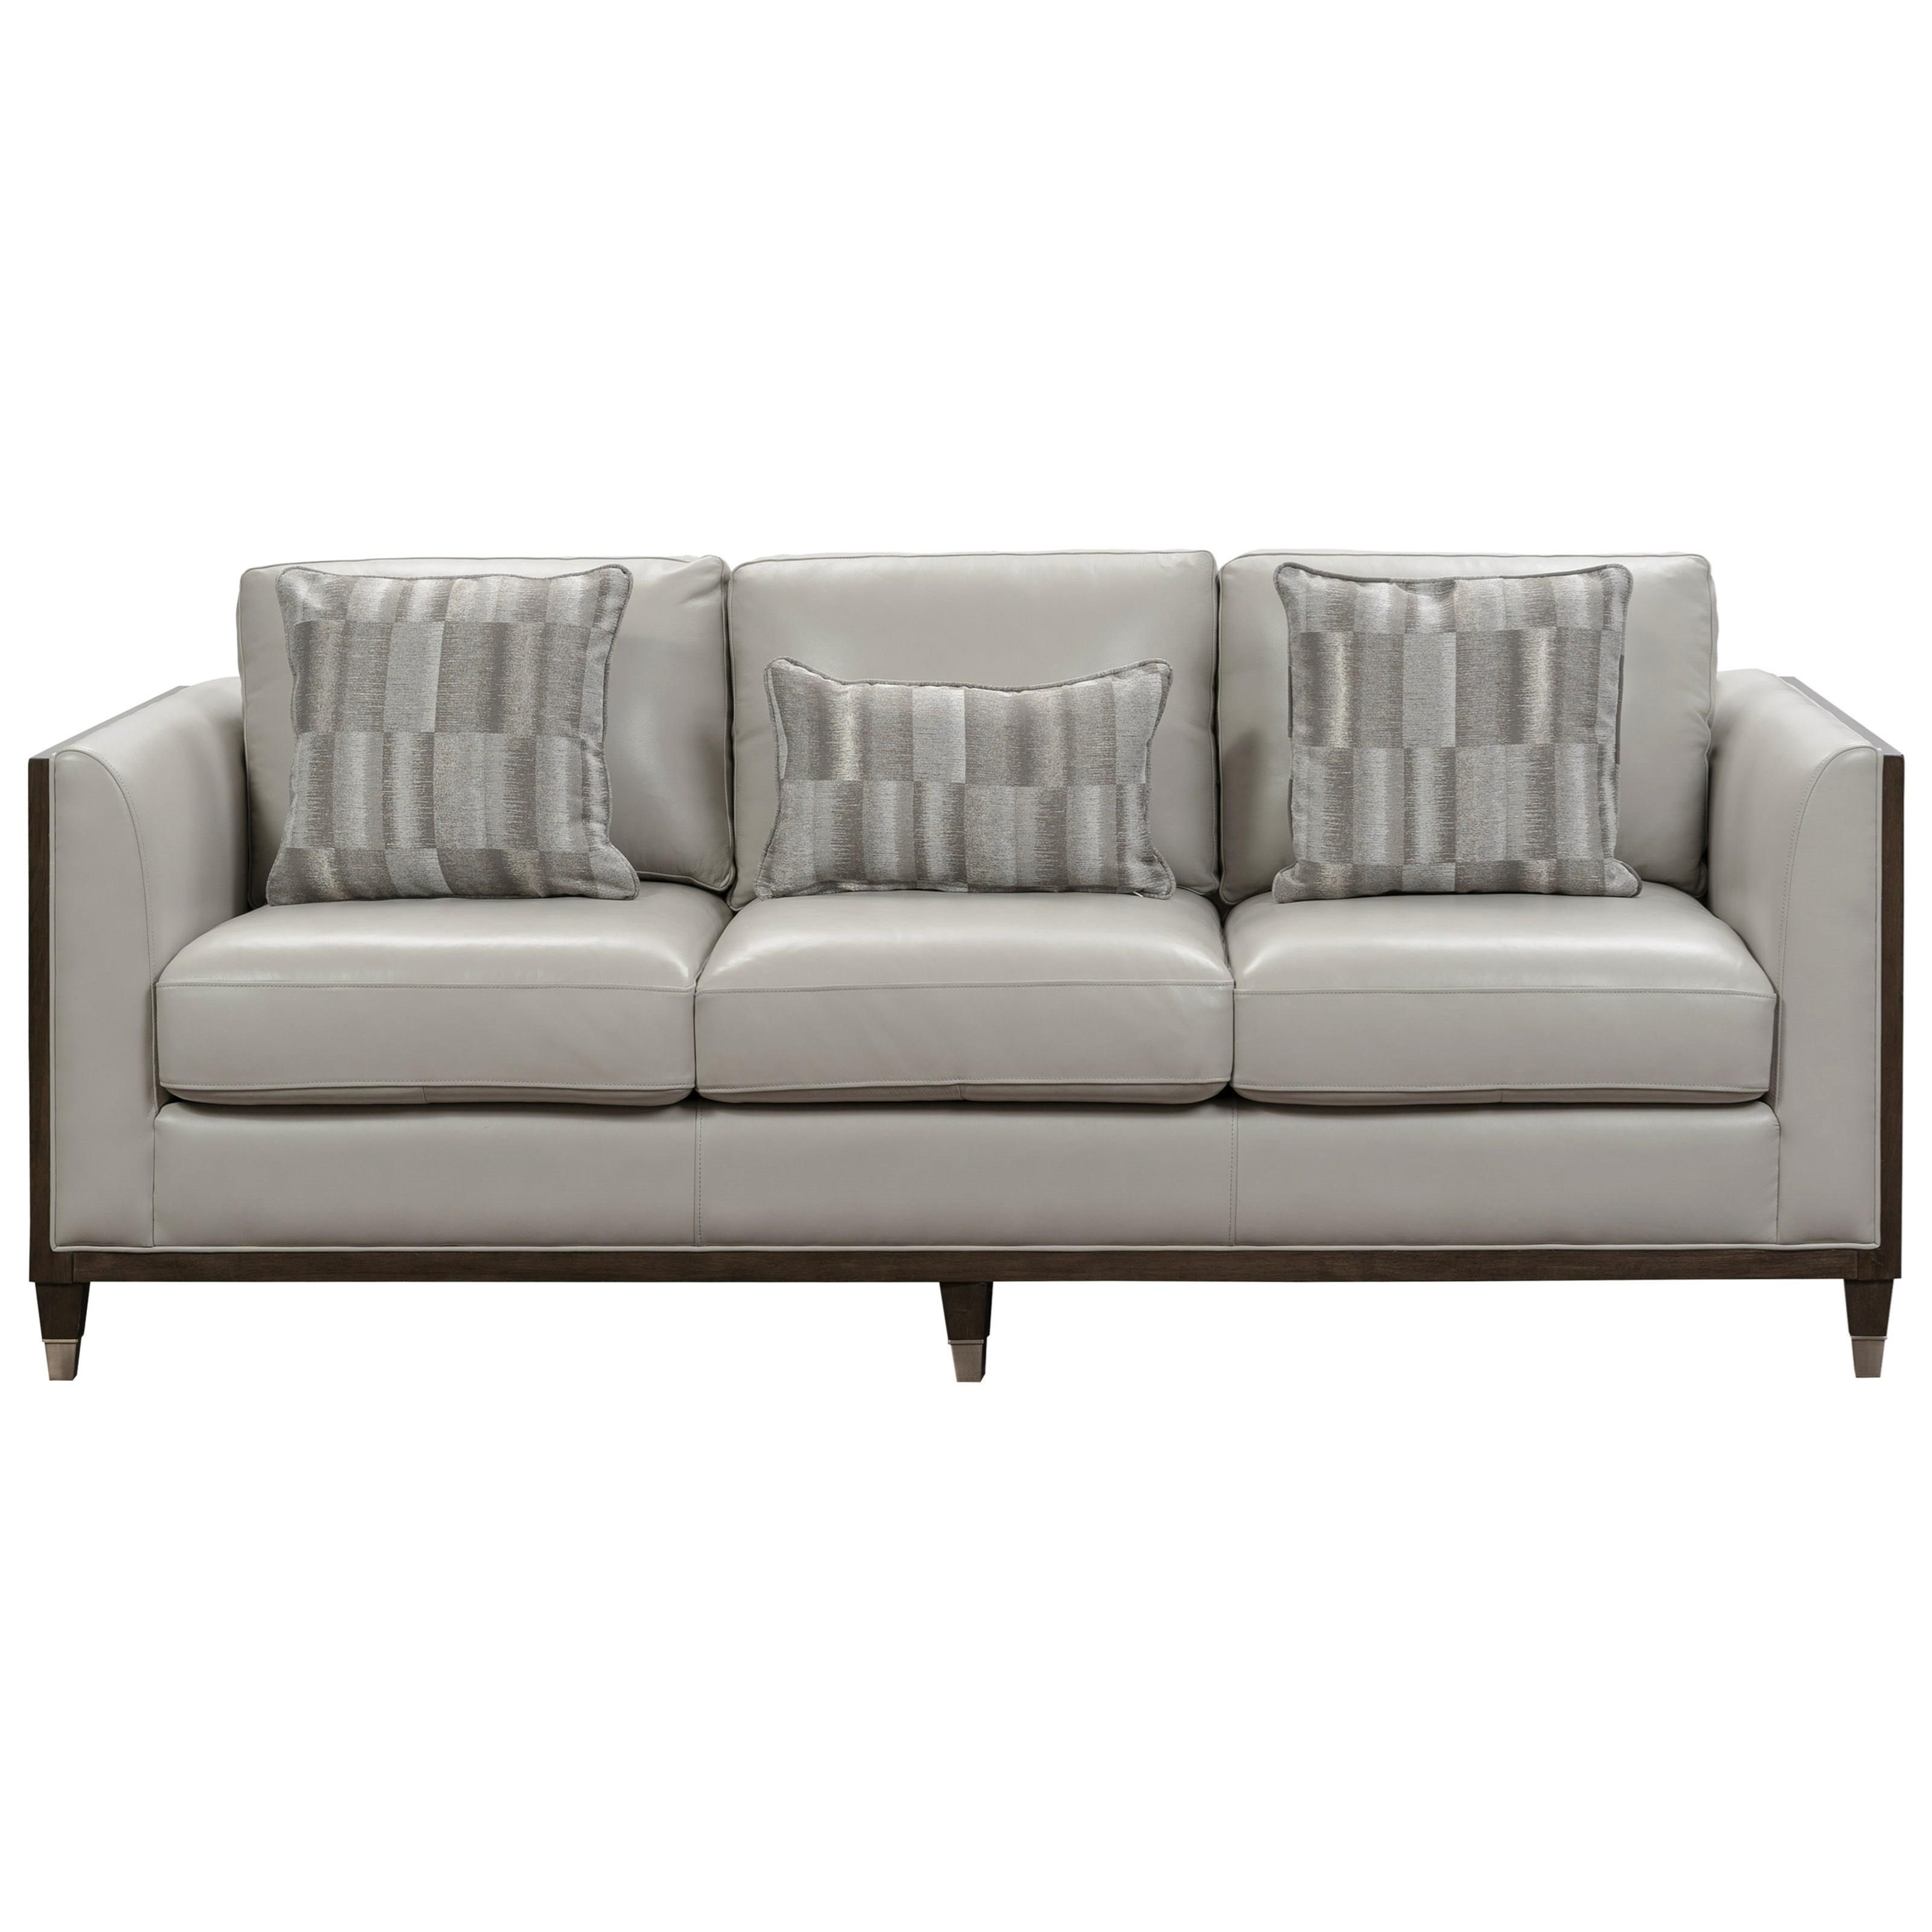 Addison Stationary Uph Sofa by Pulaski Furniture at A1 Furniture & Mattress